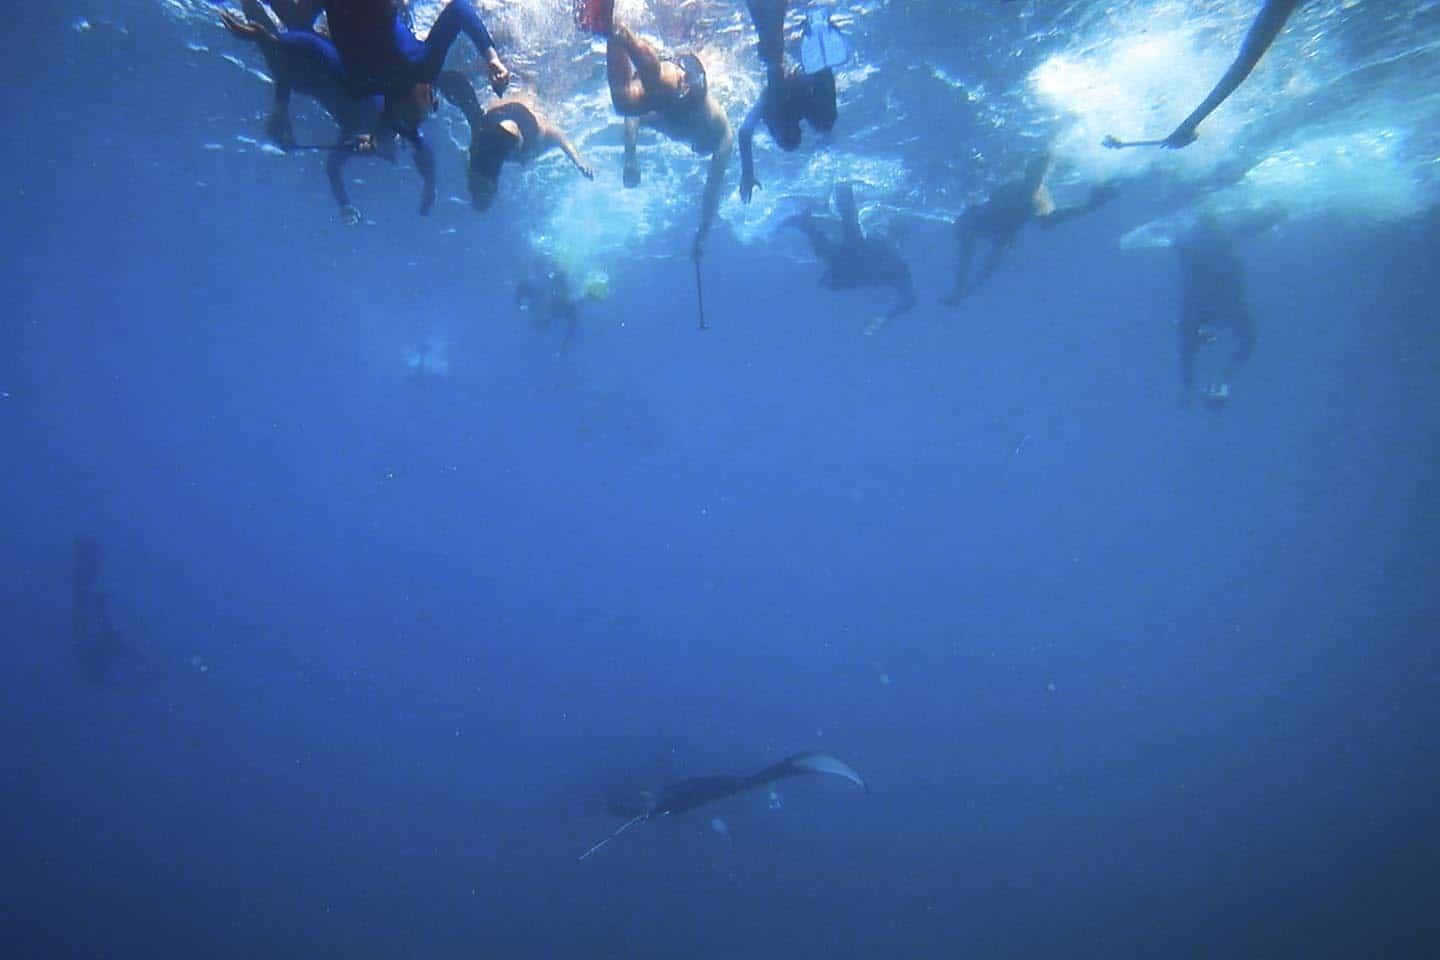 The hoard of snorkelers chasing after the manta rays in Fiji